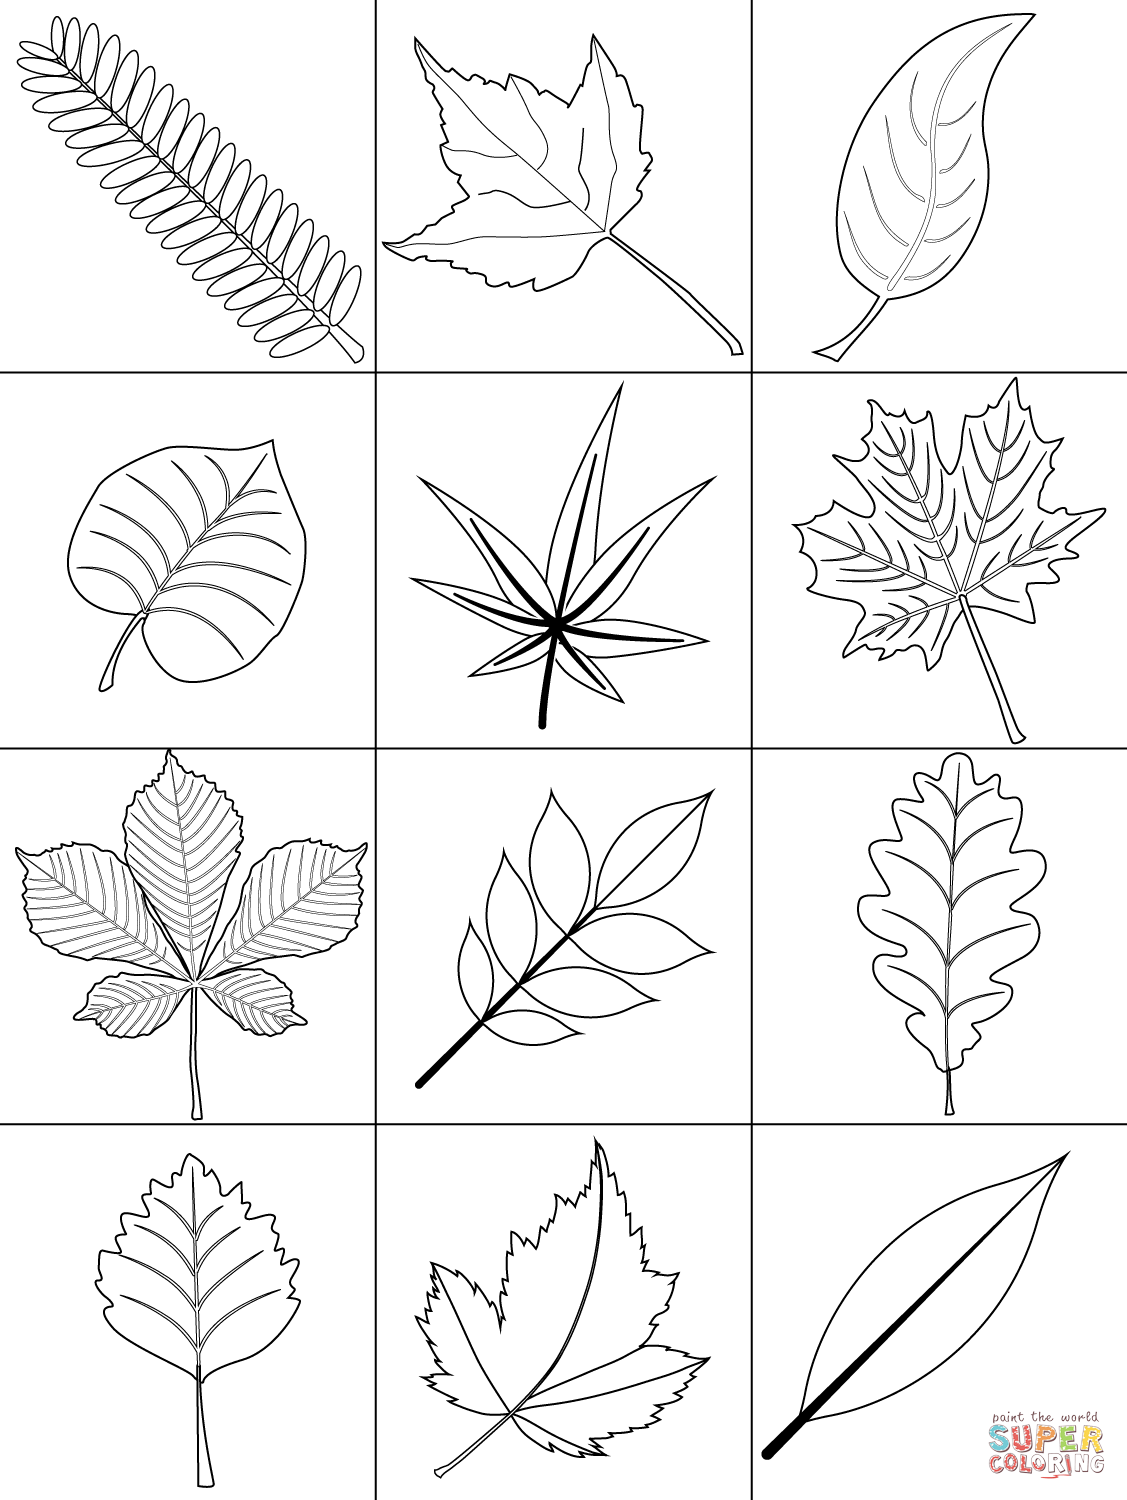 autumn leaves coloring pages autumn coloring pages coloring pages to download and print leaves coloring pages autumn